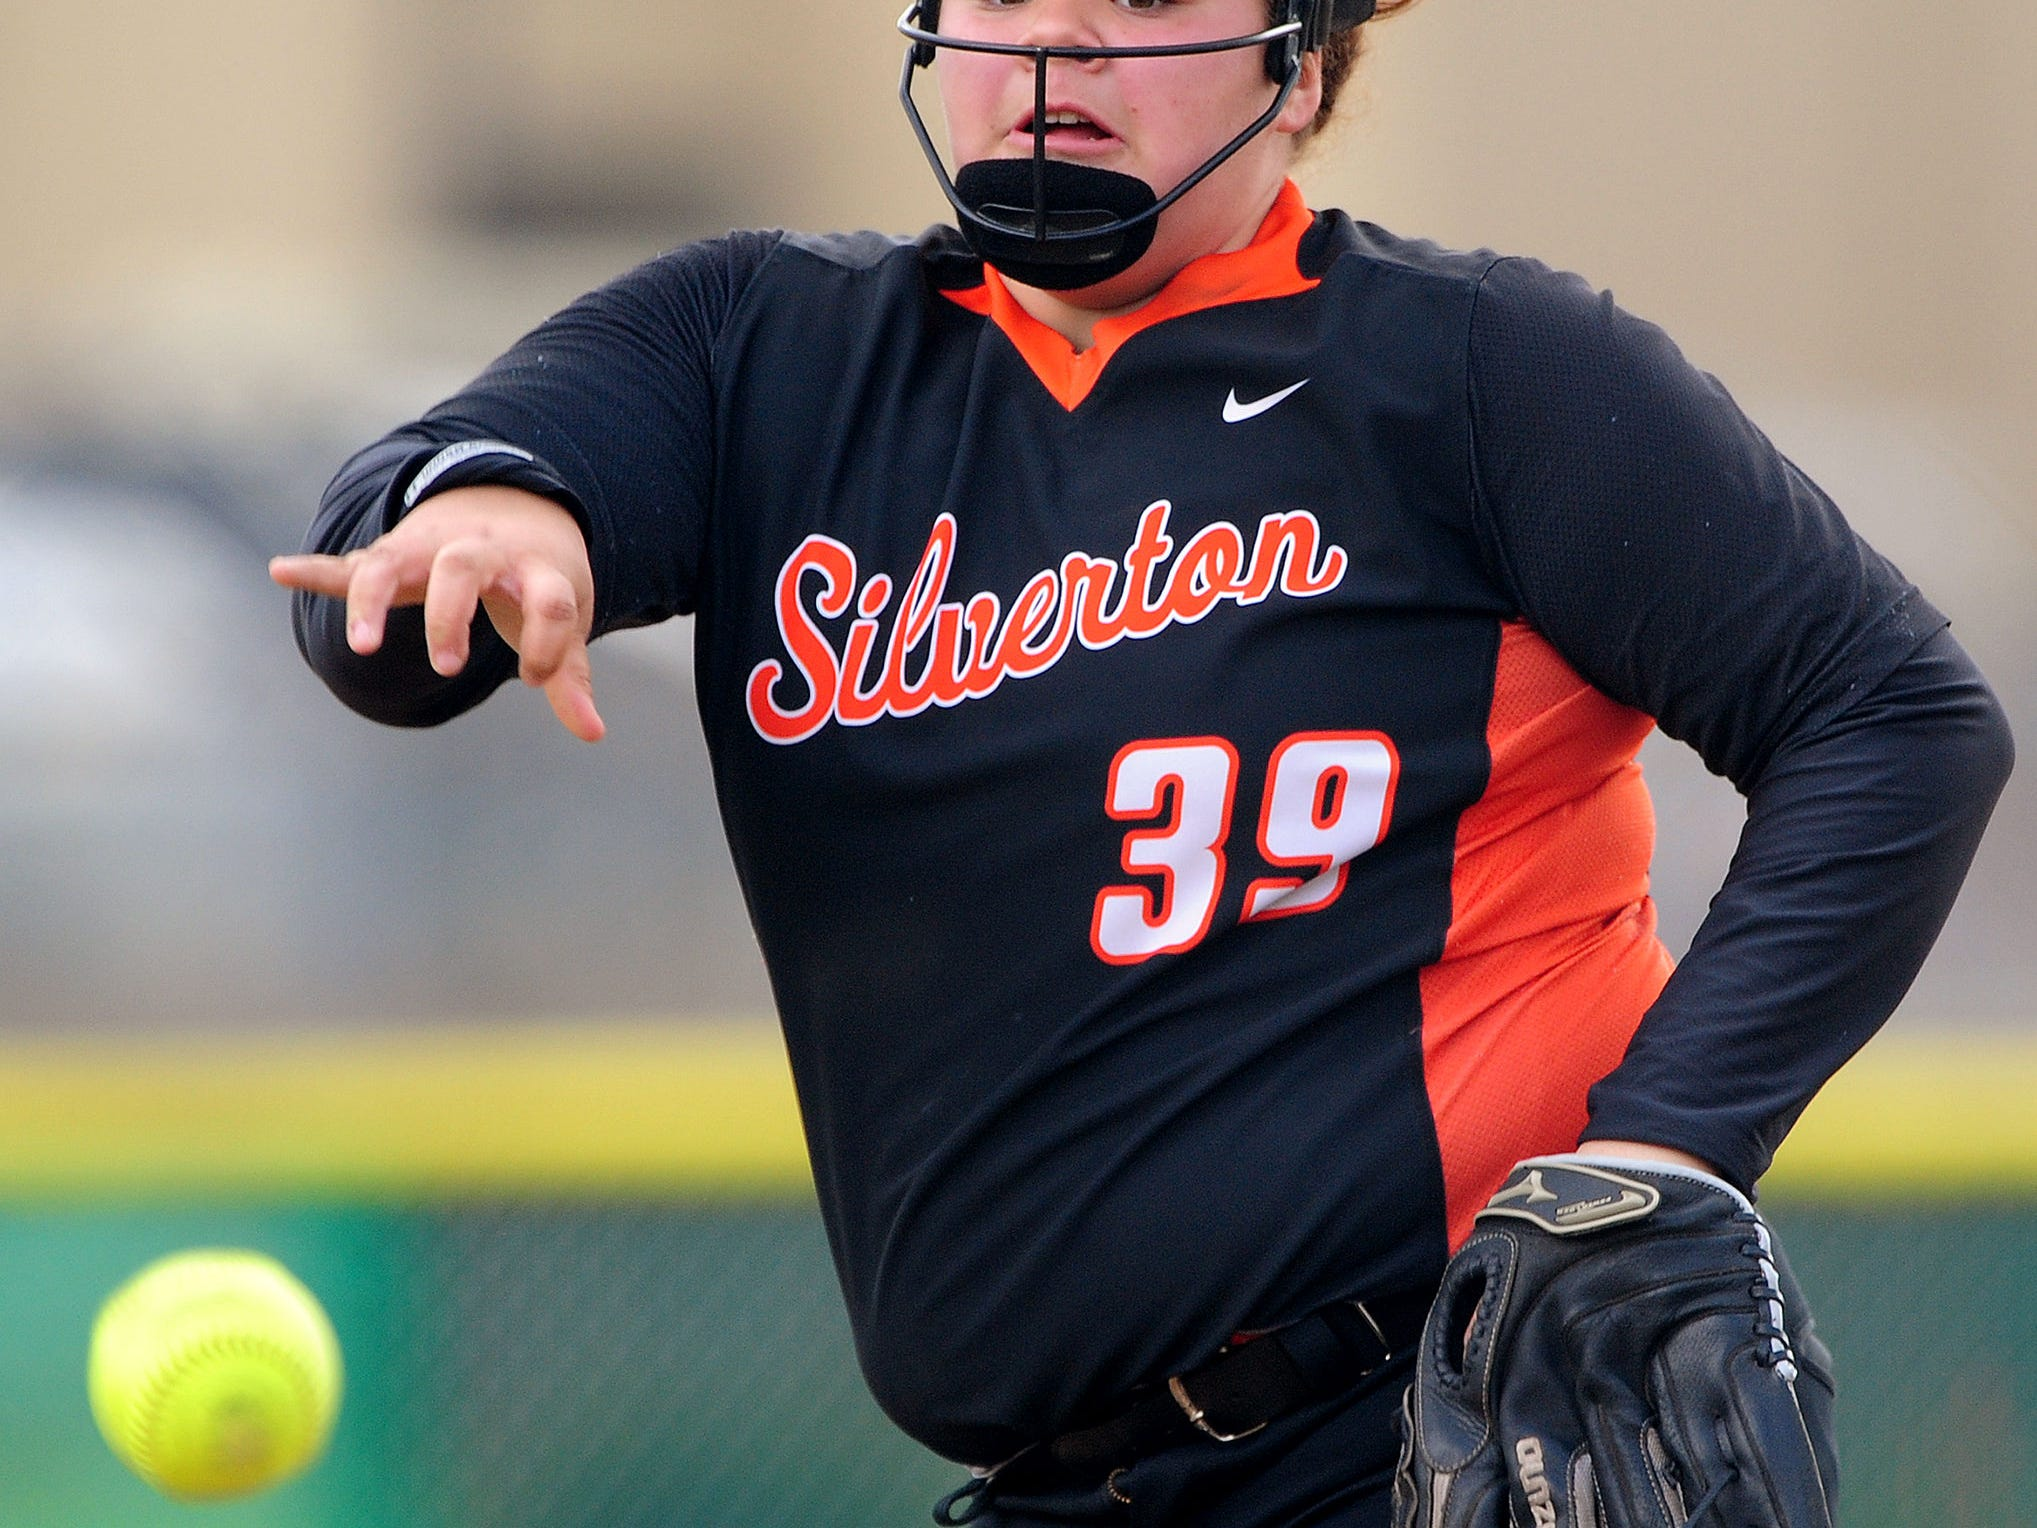 Silverton pitcher Alex Molloy throws against Central during the first game of a doubleheader, on Friday, April 24, 2015, in Independence.